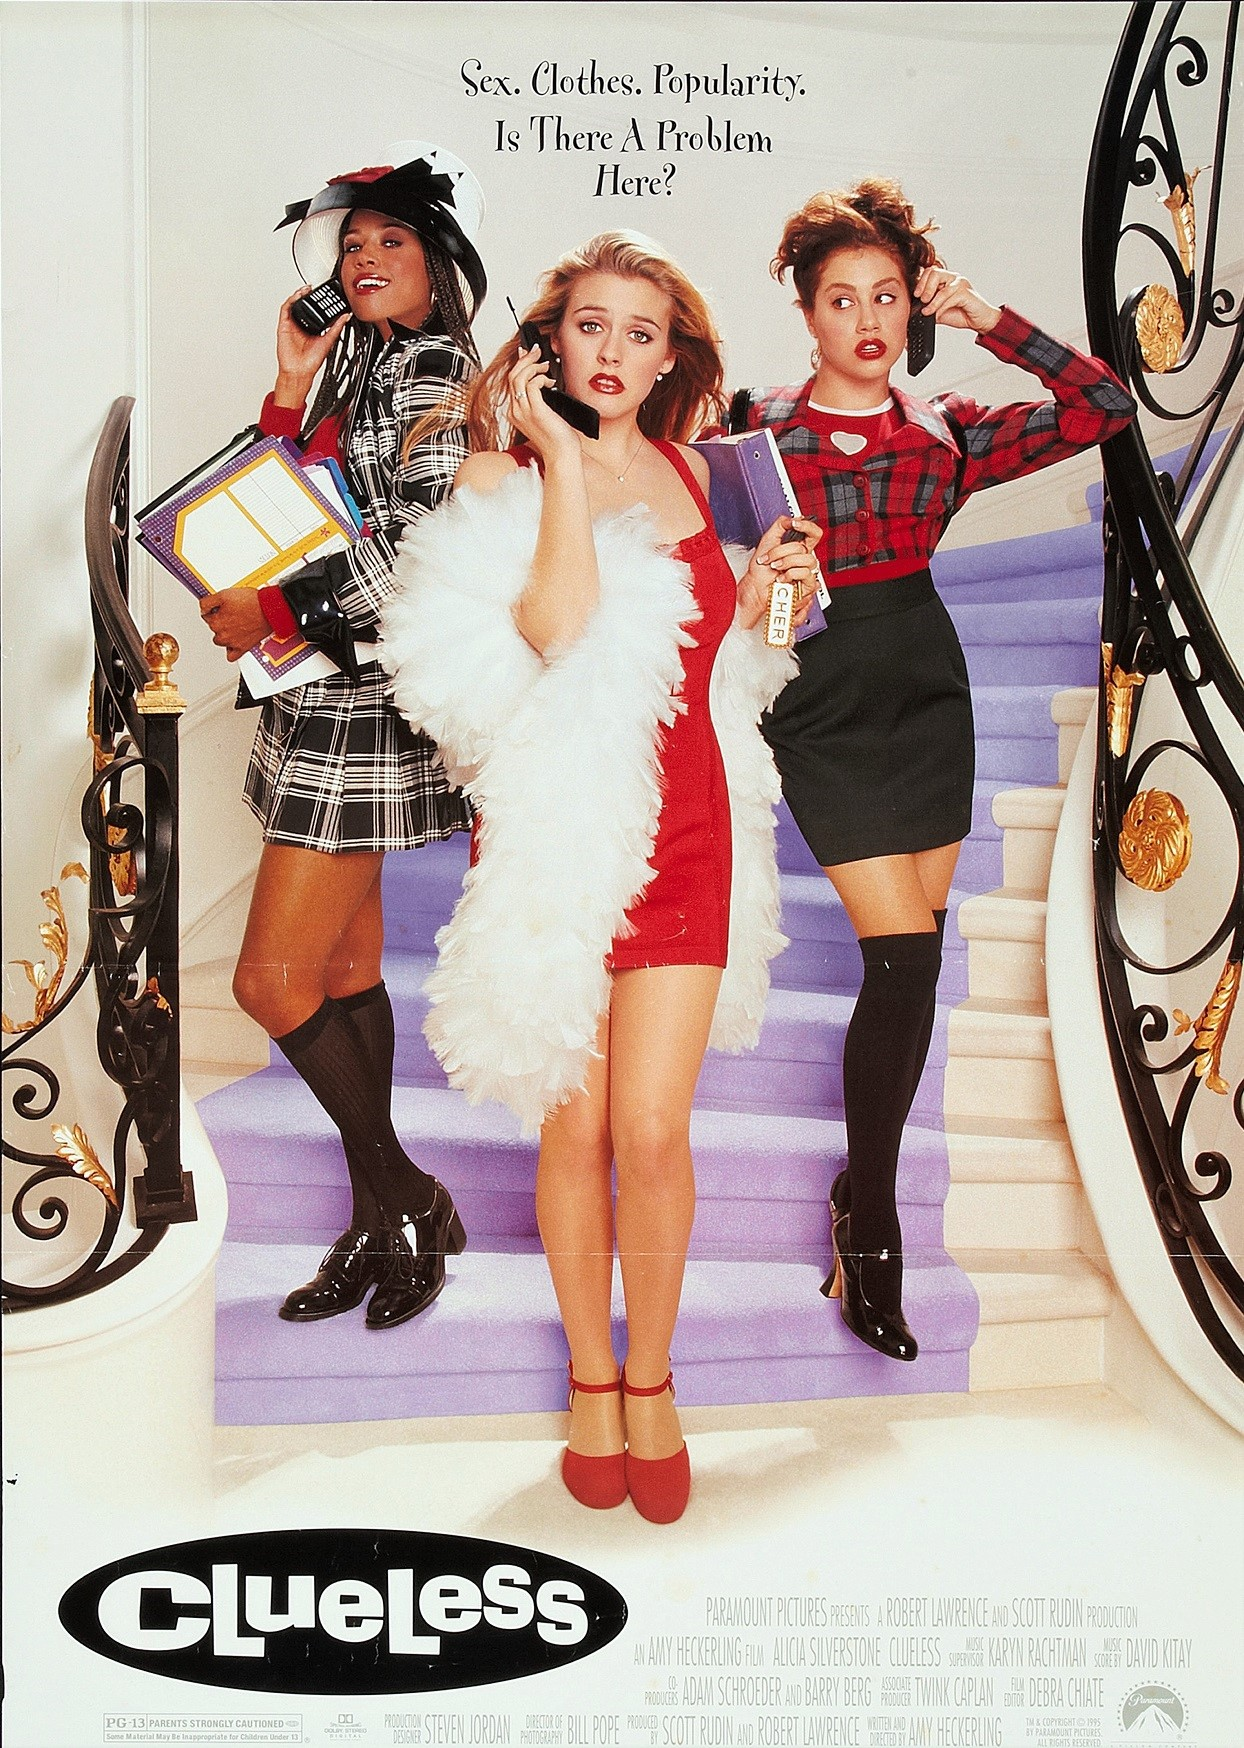 Clueless Cast Reunites and Remembers Costar Brittany Murphy Nearly 10 Years After Her Death